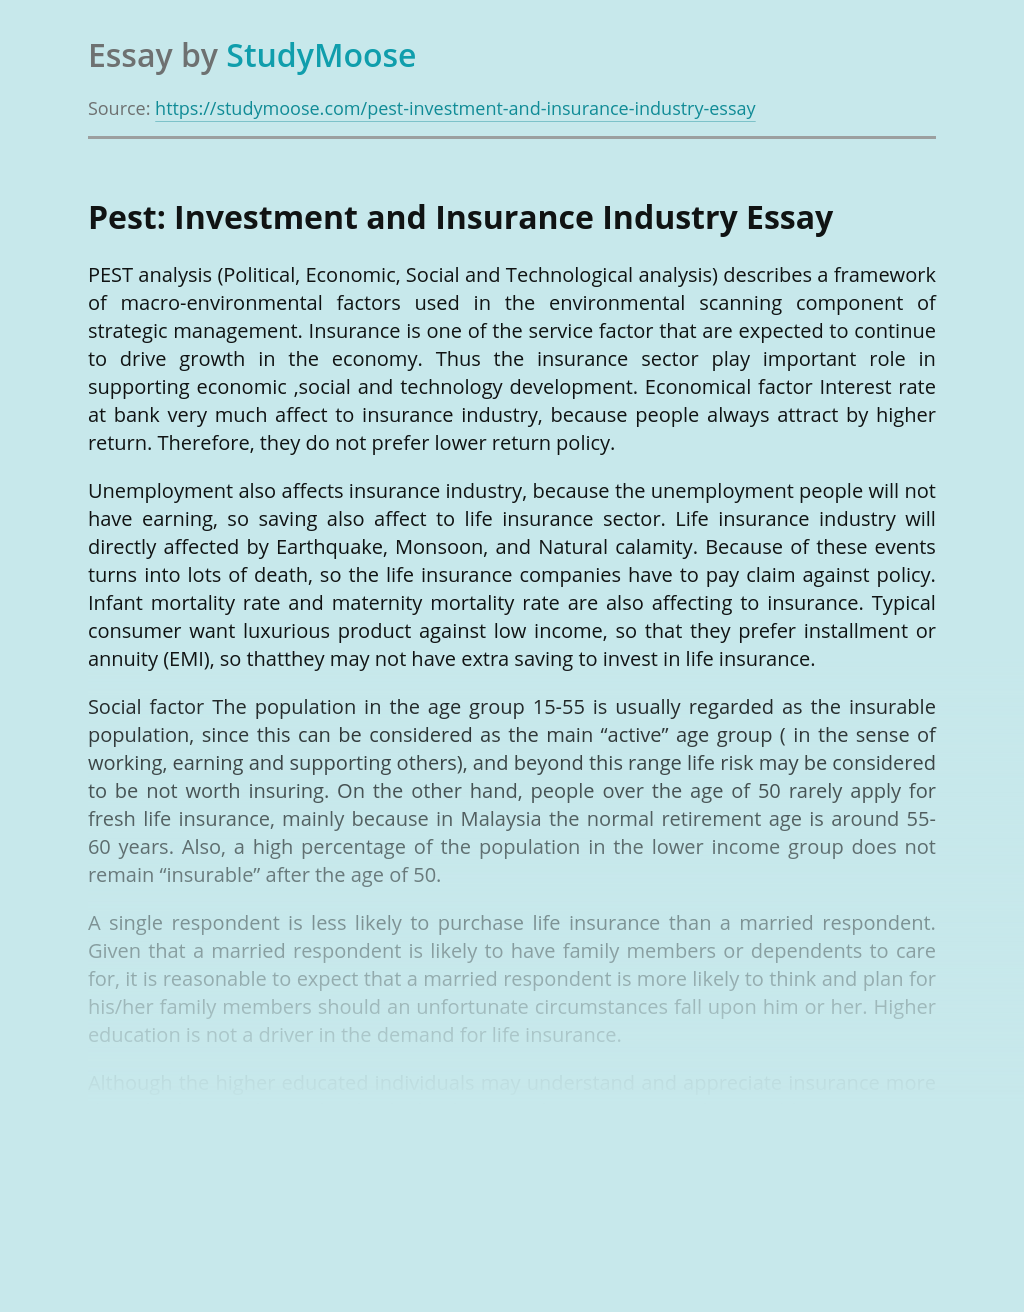 Pest: Investment and Insurance Industry